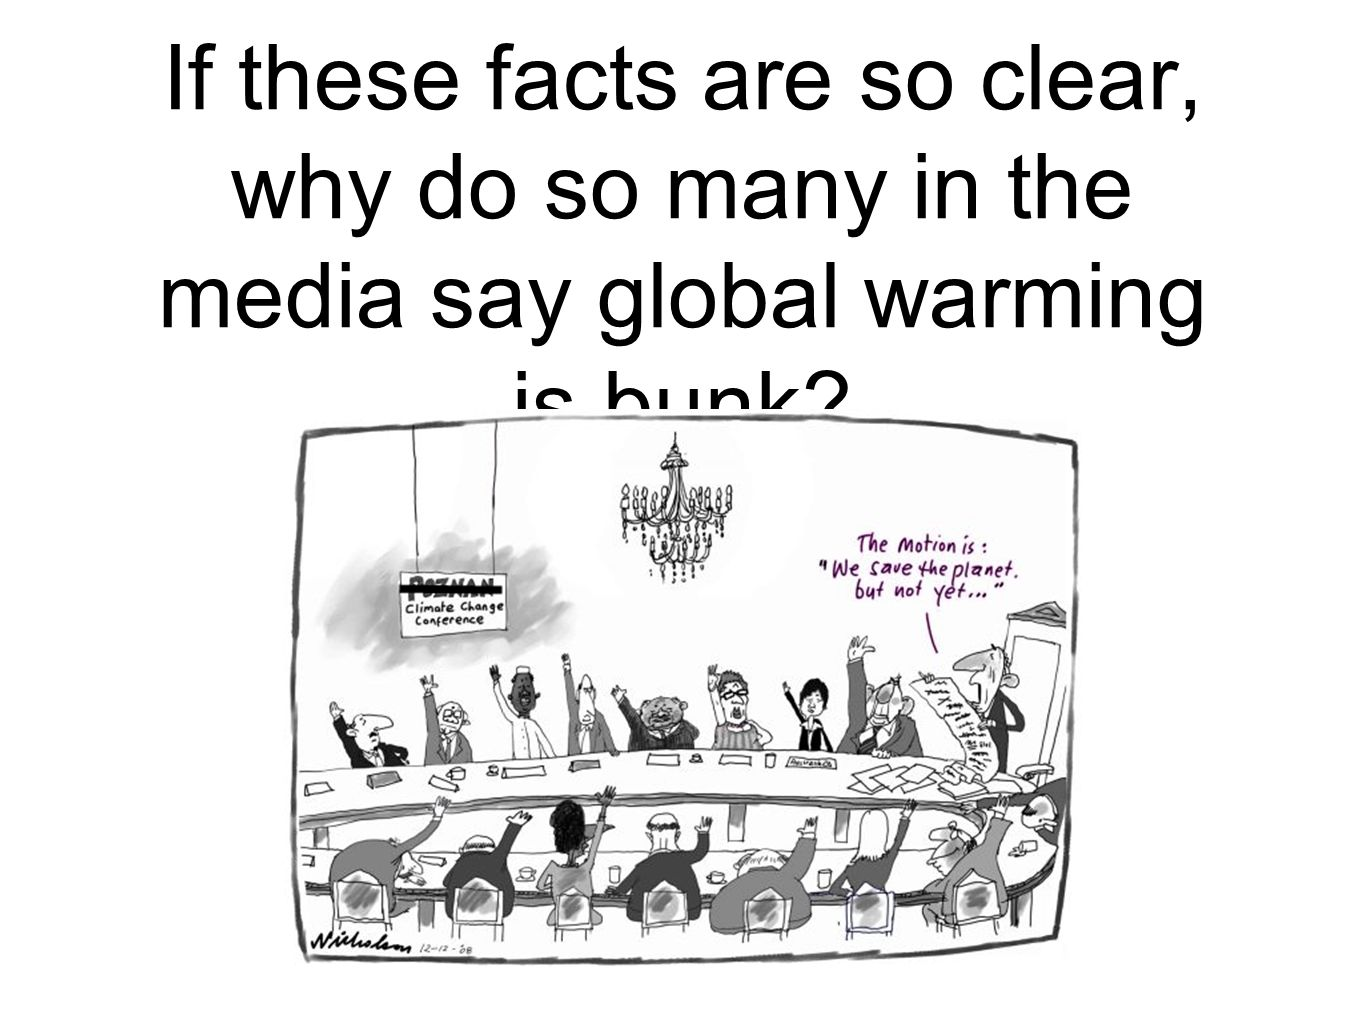 If these facts are so clear, why do so many in the media say global warming is bunk?